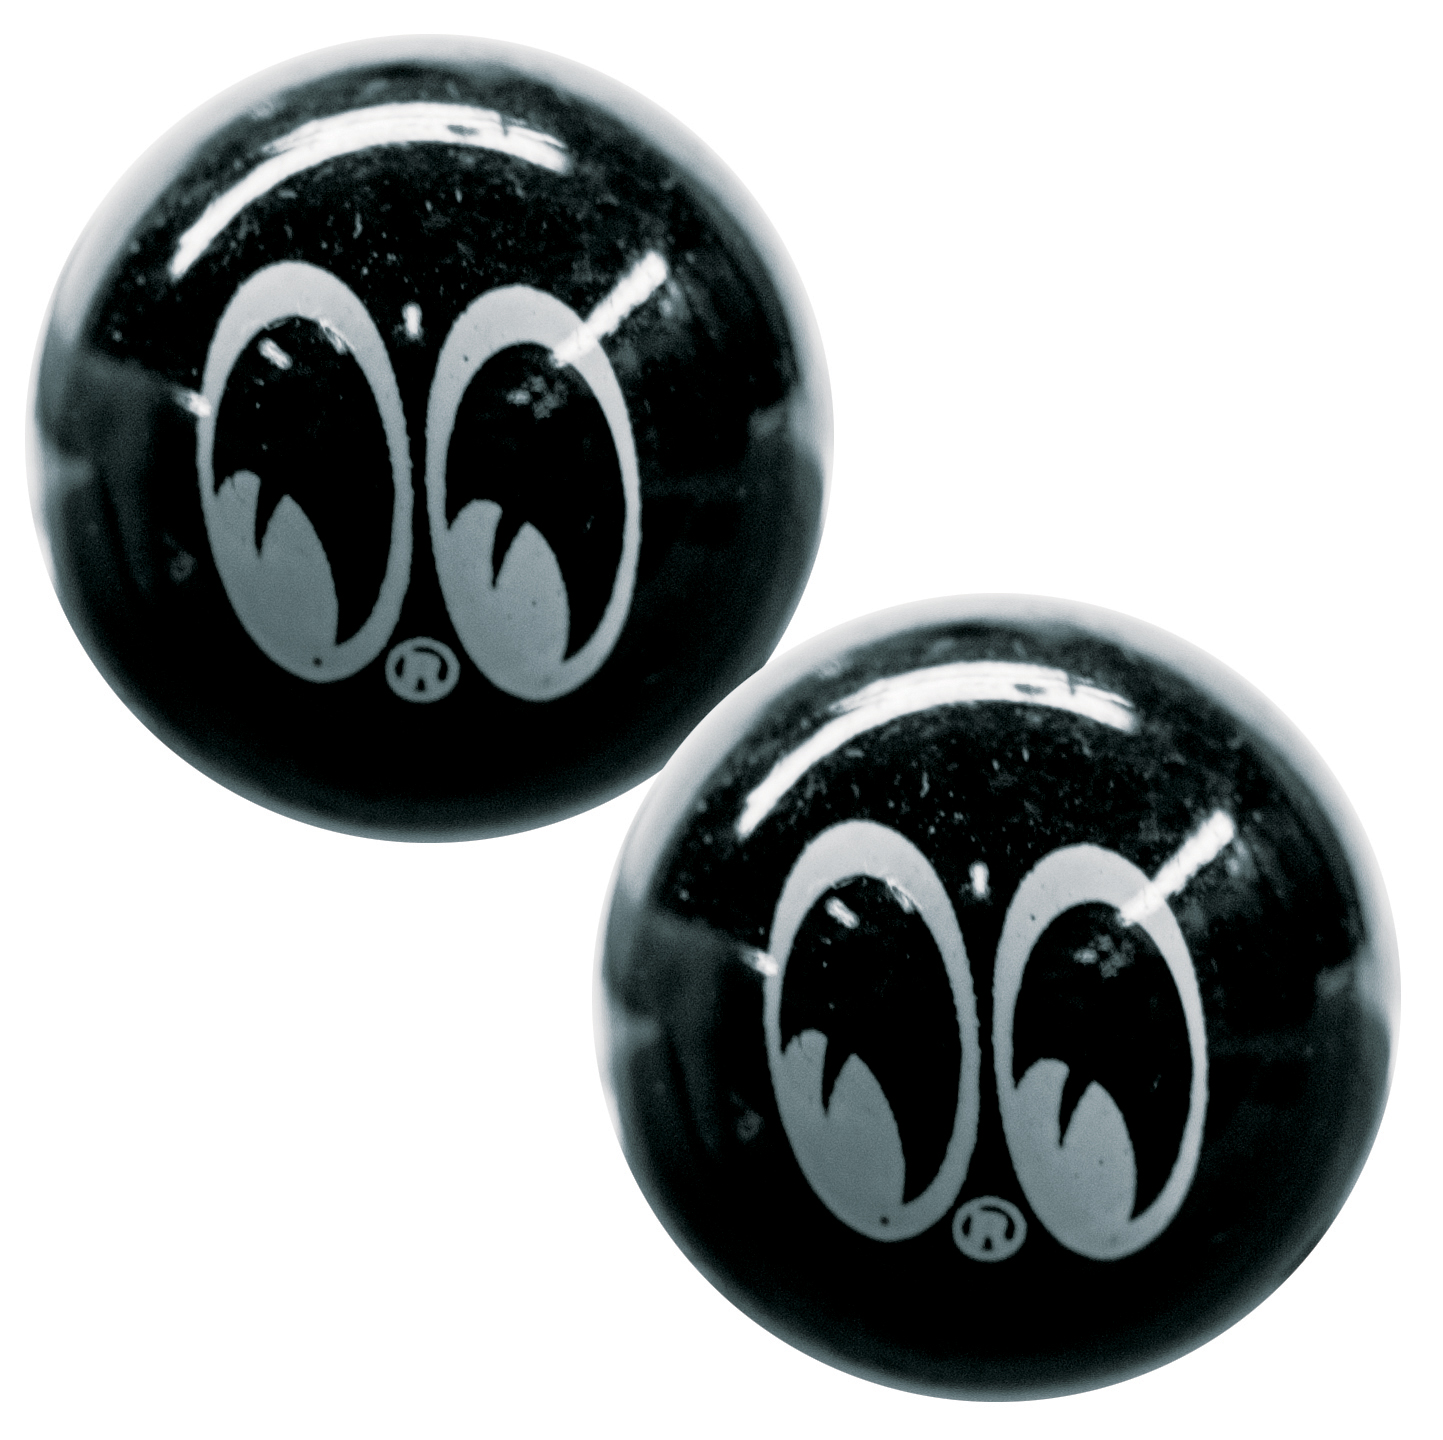 Moon Black Ball Valve Caps